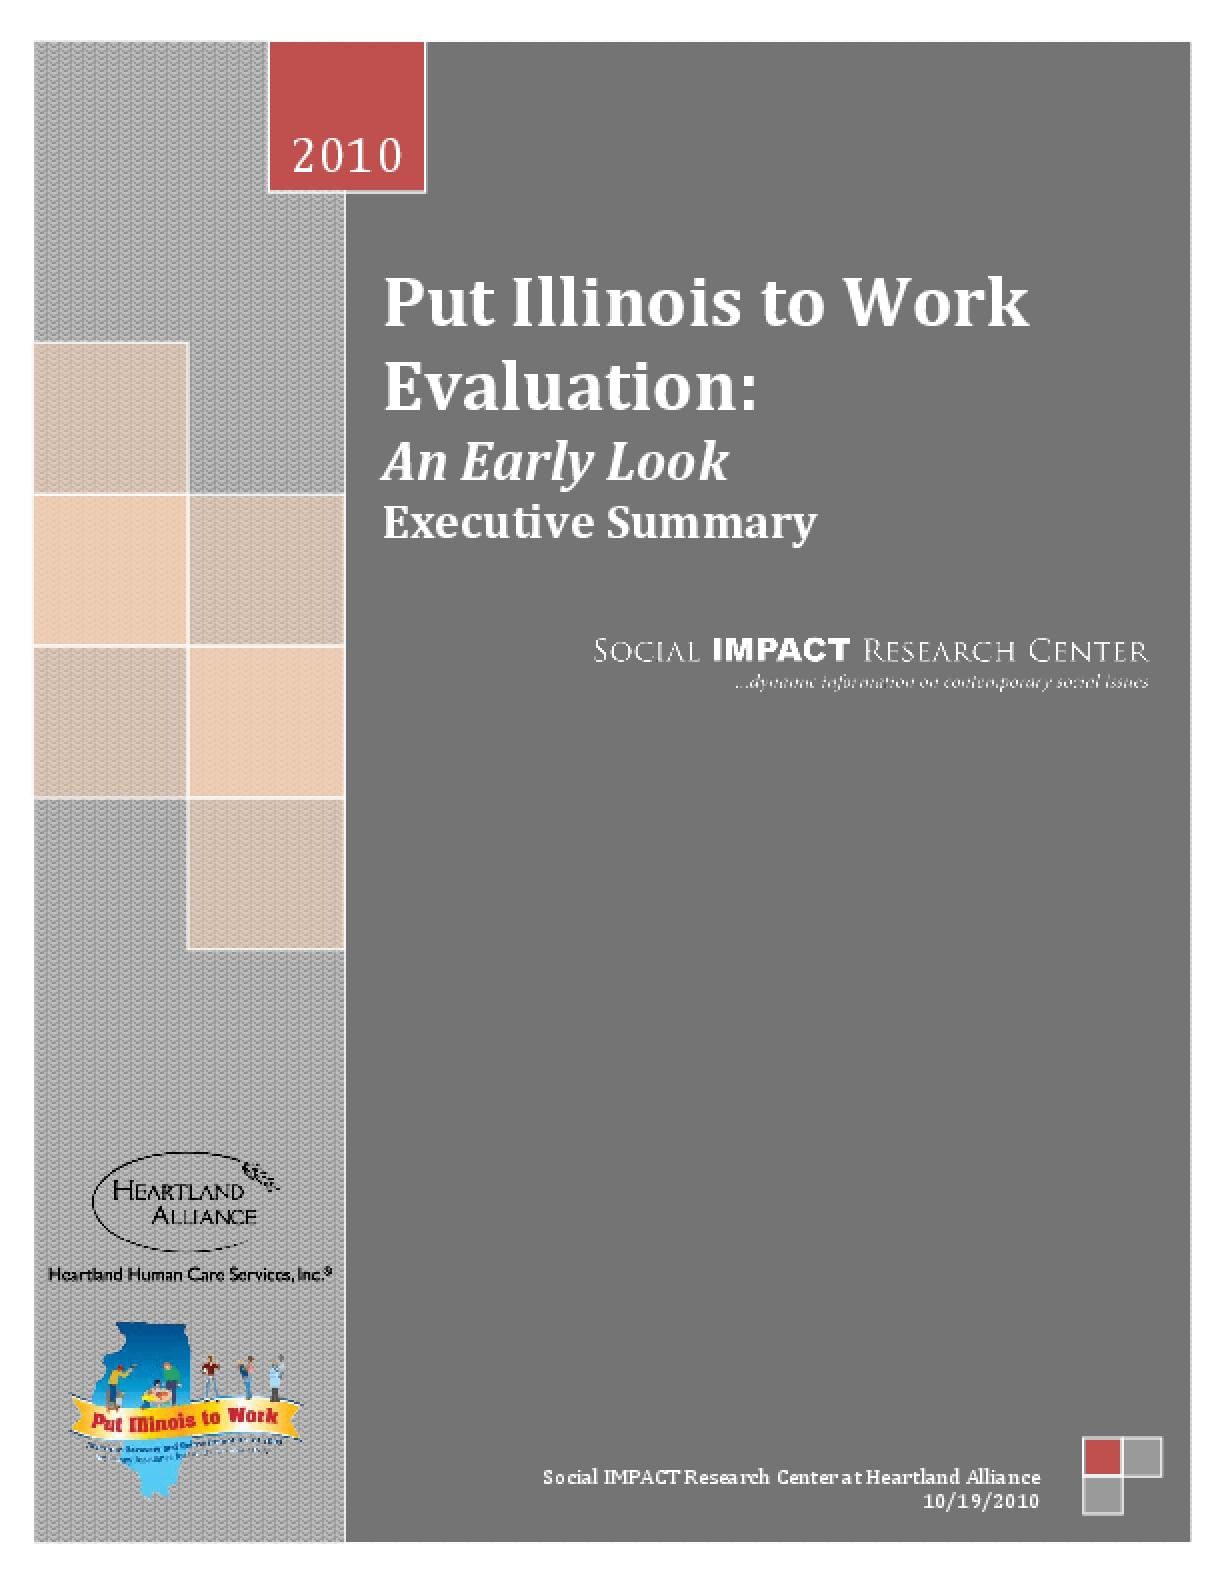 Put Illinois to Work Evaluation: An Early Look - Executive Summary